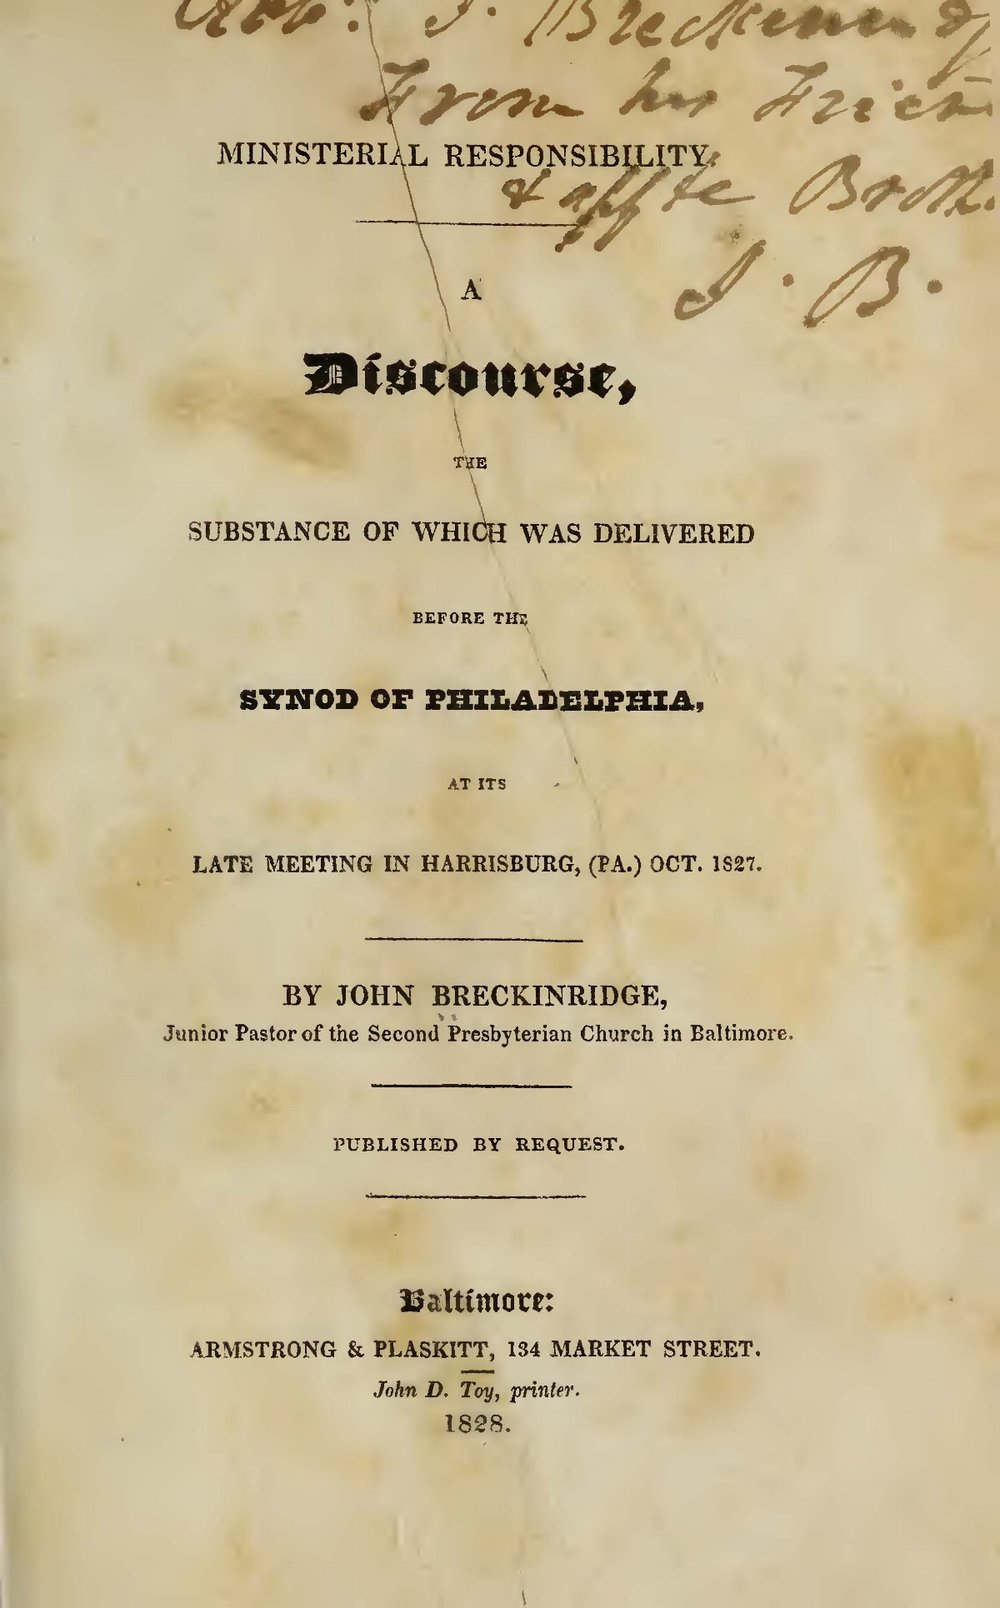 Breckinridge, John, Ministerial Responsibility Title Page.jpg